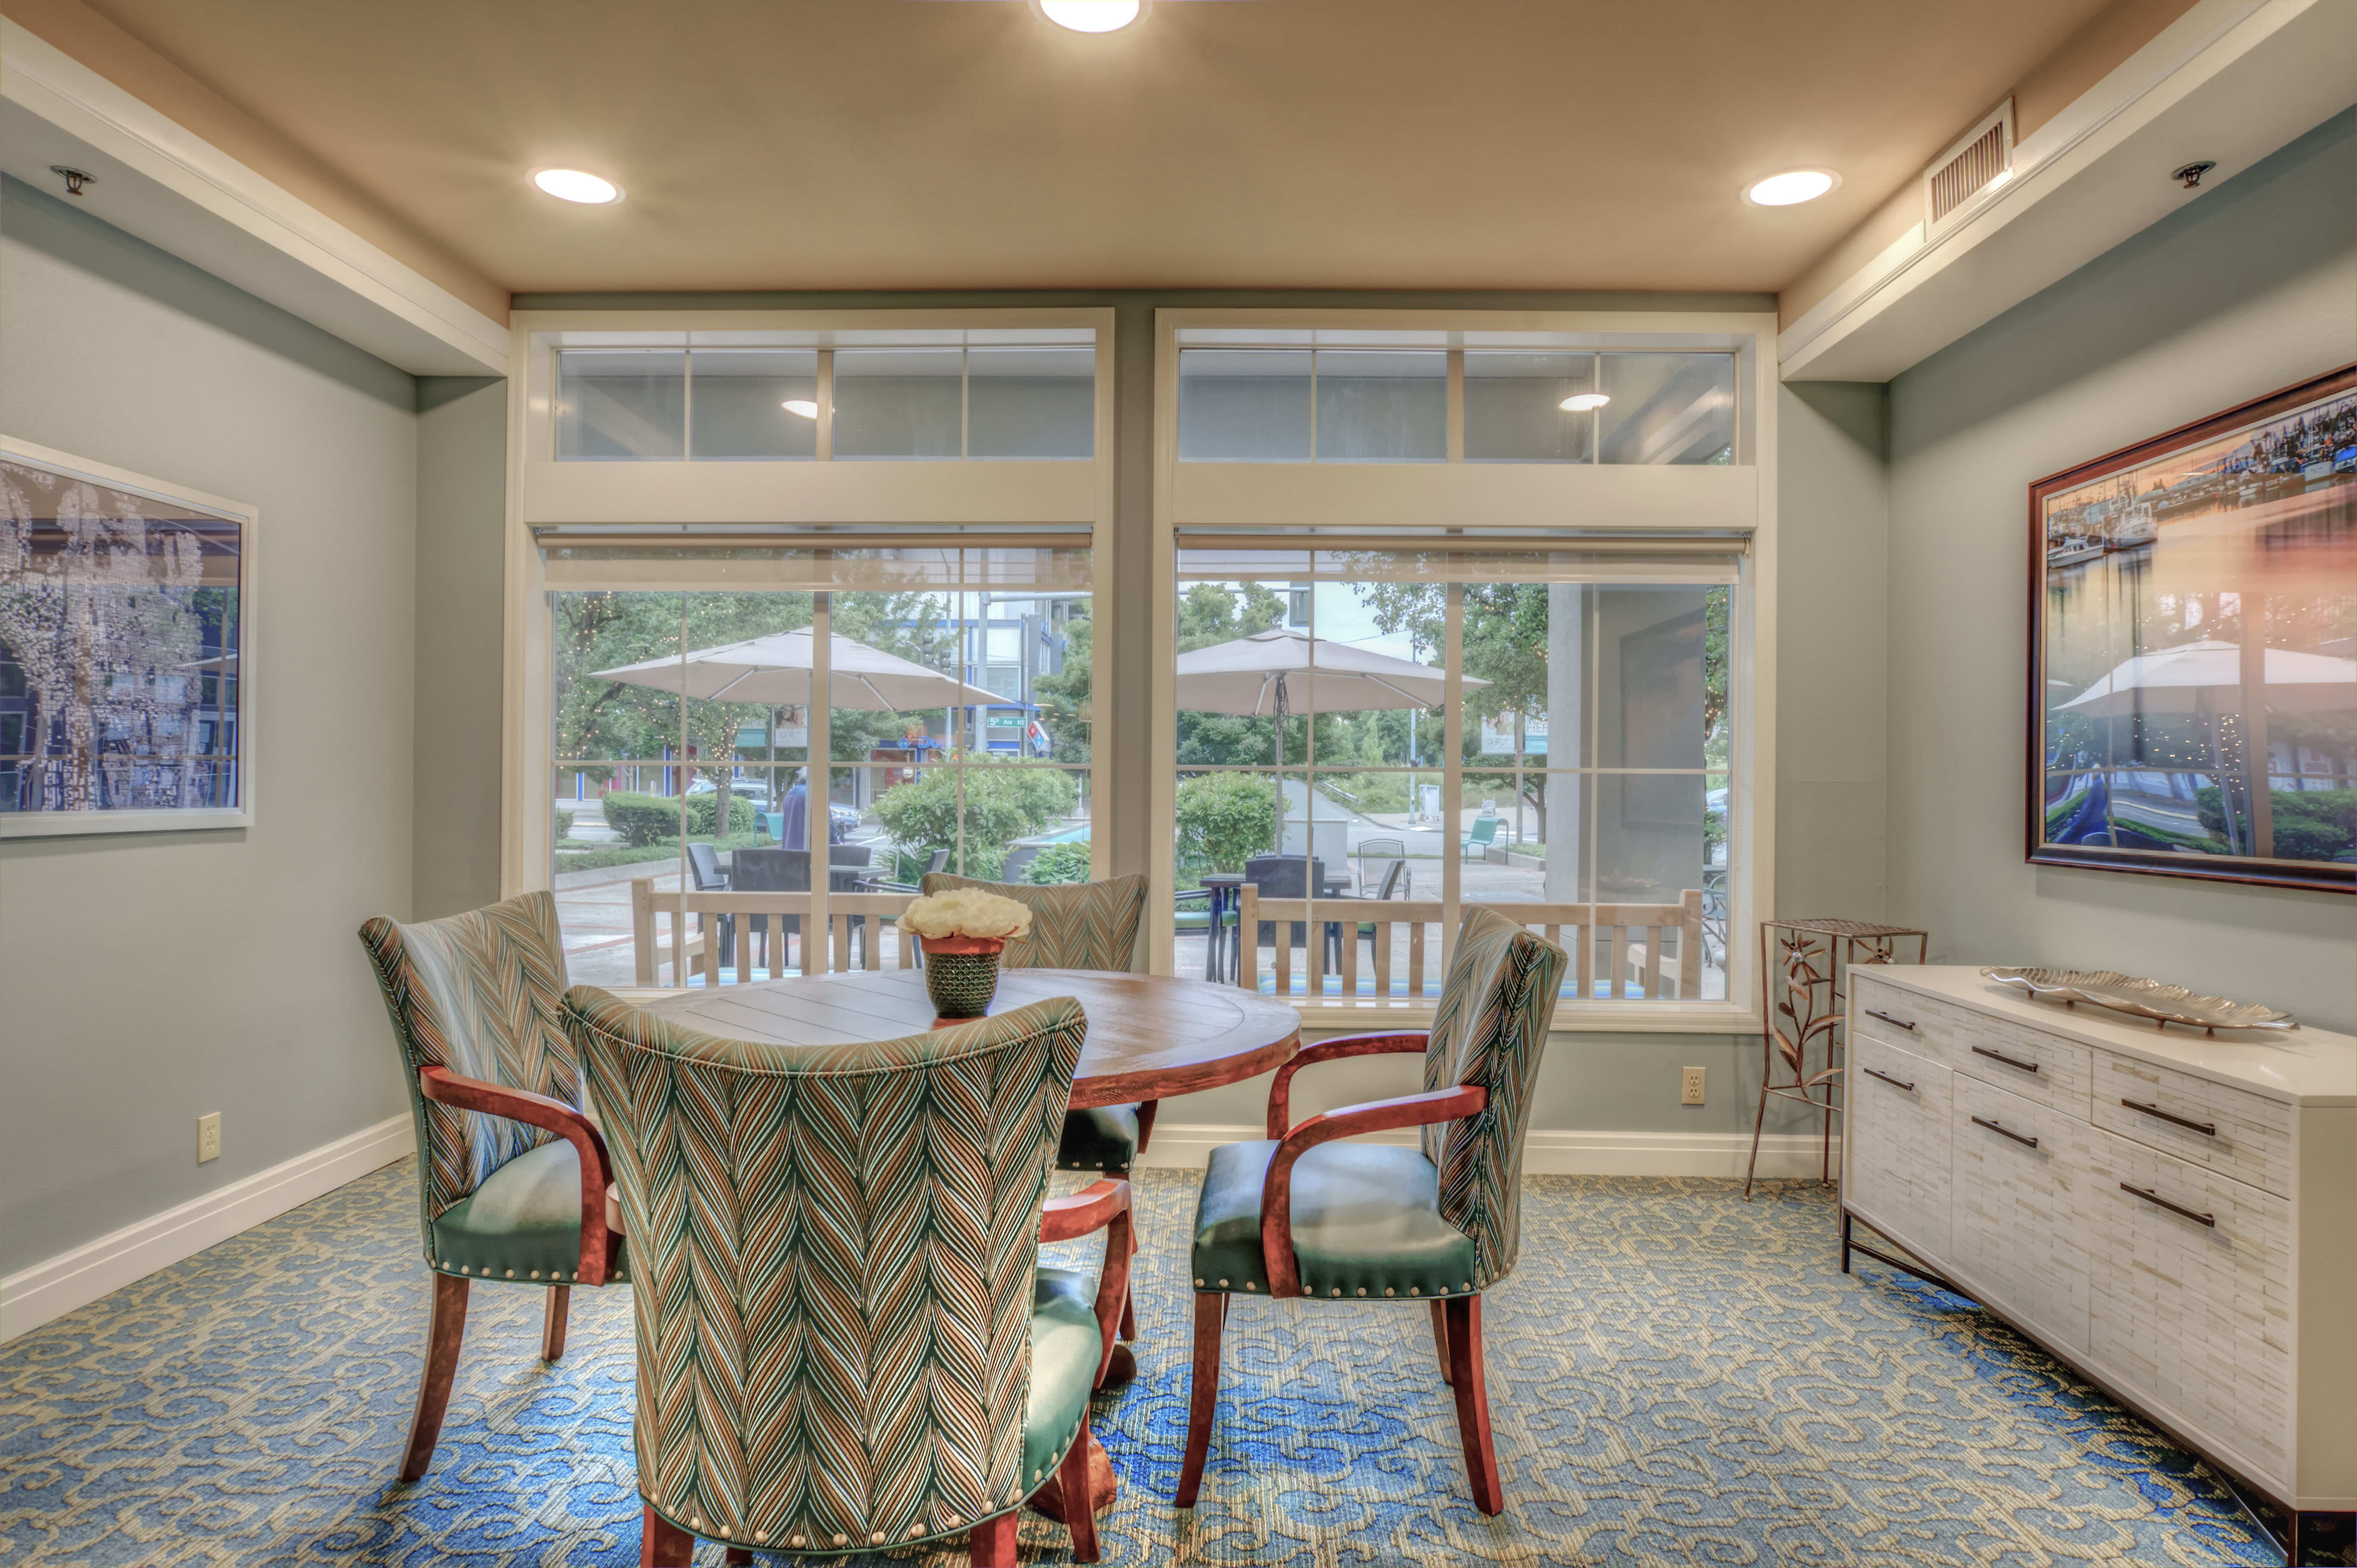 Schedule a tour for the senior living community in Seattle